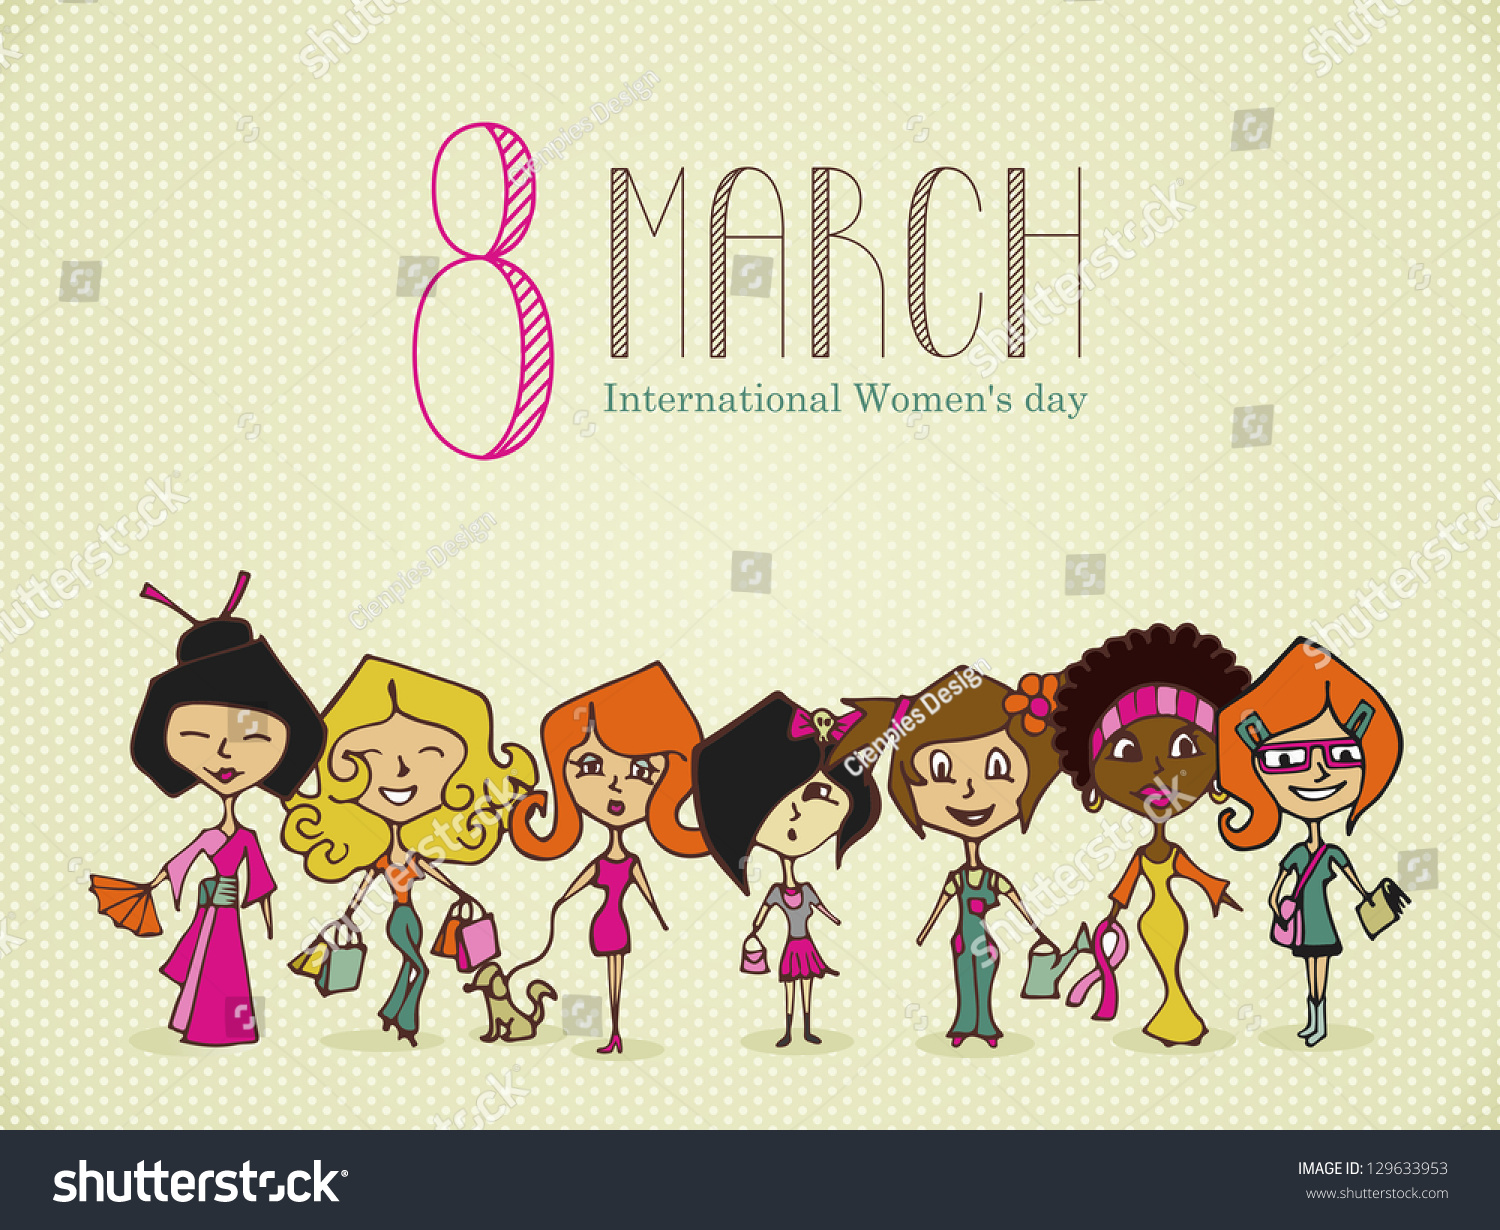 Different cultures women 8 march woman stock illustration 129633953 different cultures women in 8 march woman day greeting card m4hsunfo Images